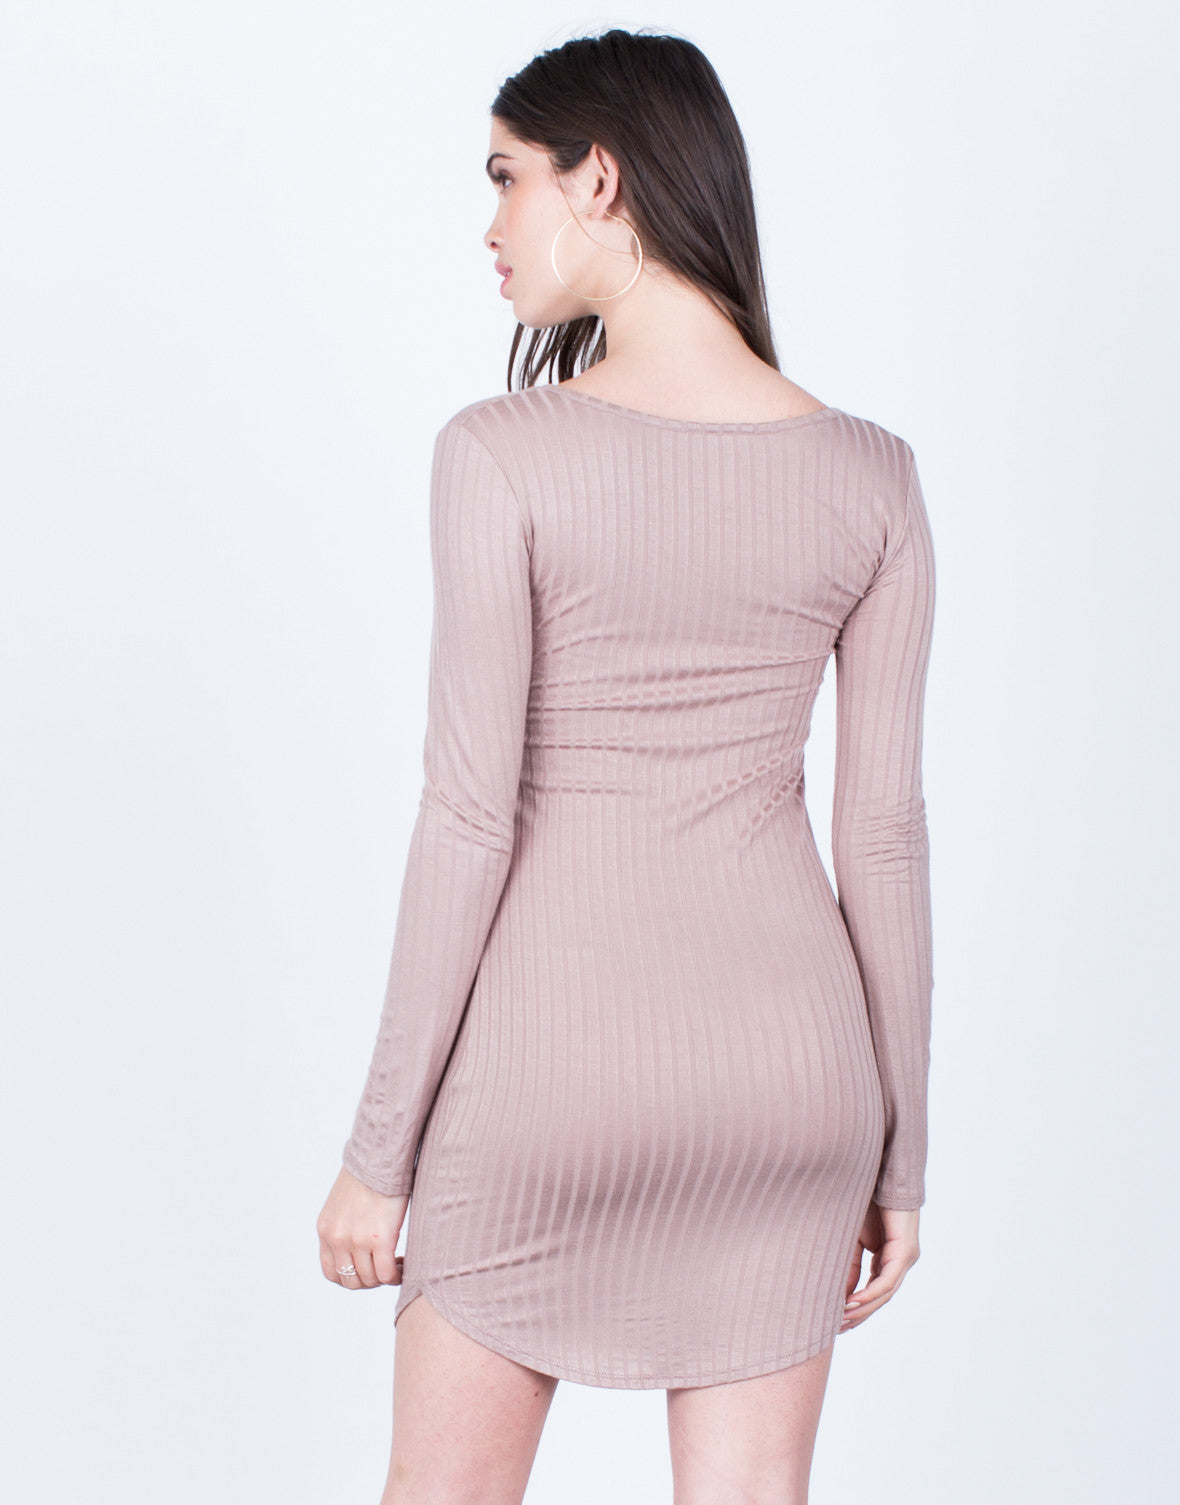 Back View of Criss Cross Ribbed Dress